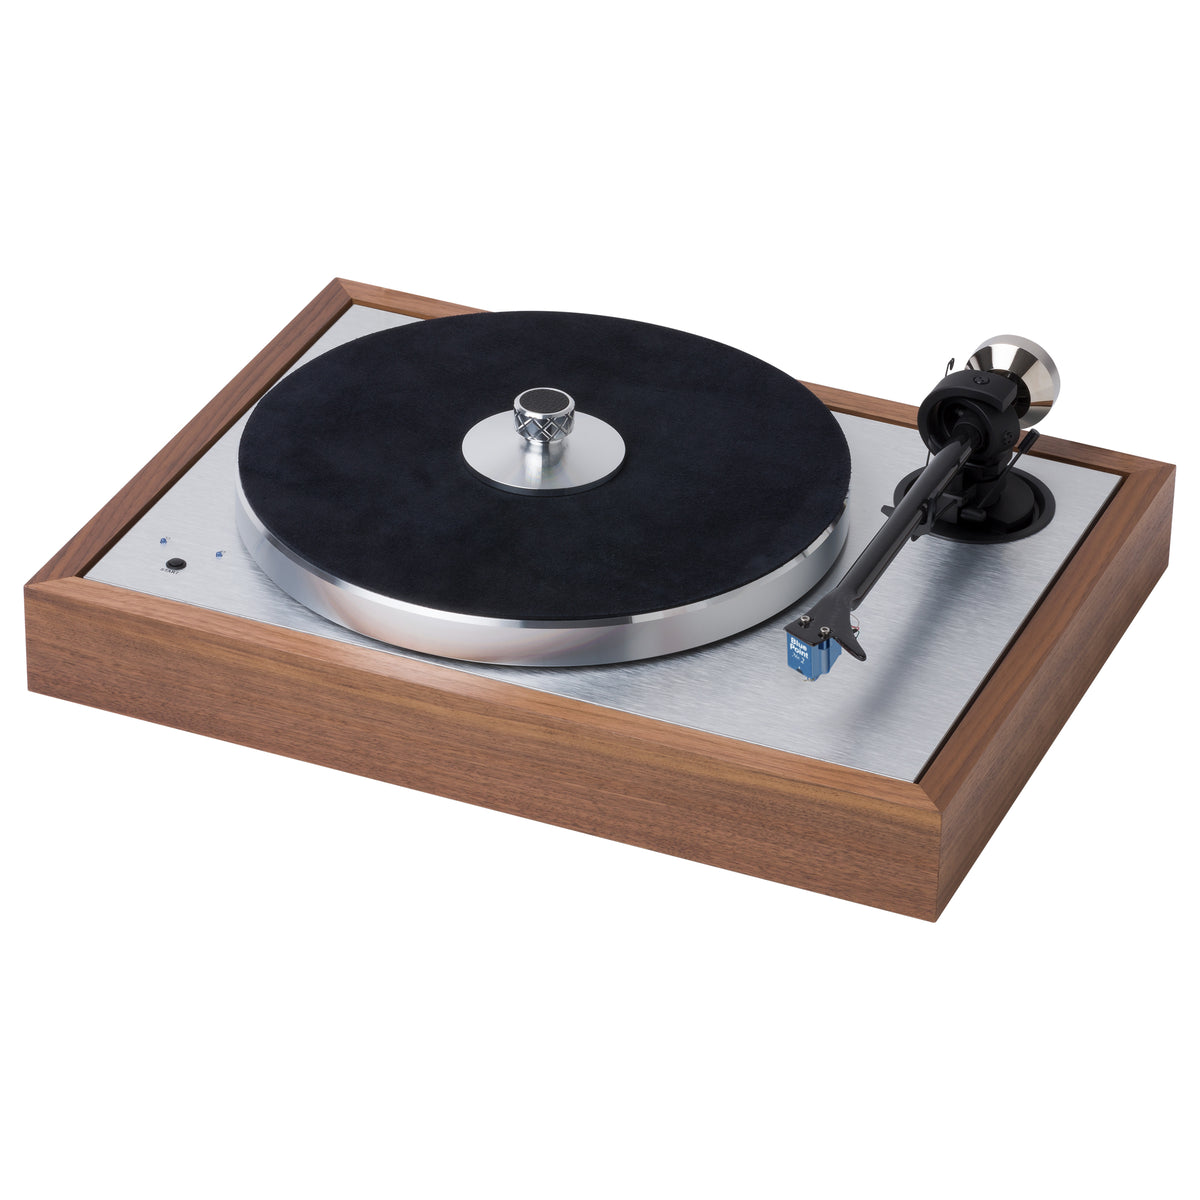 Pro-Ject: The Classic SB Turntable (Blue Point No.2) - Walnut